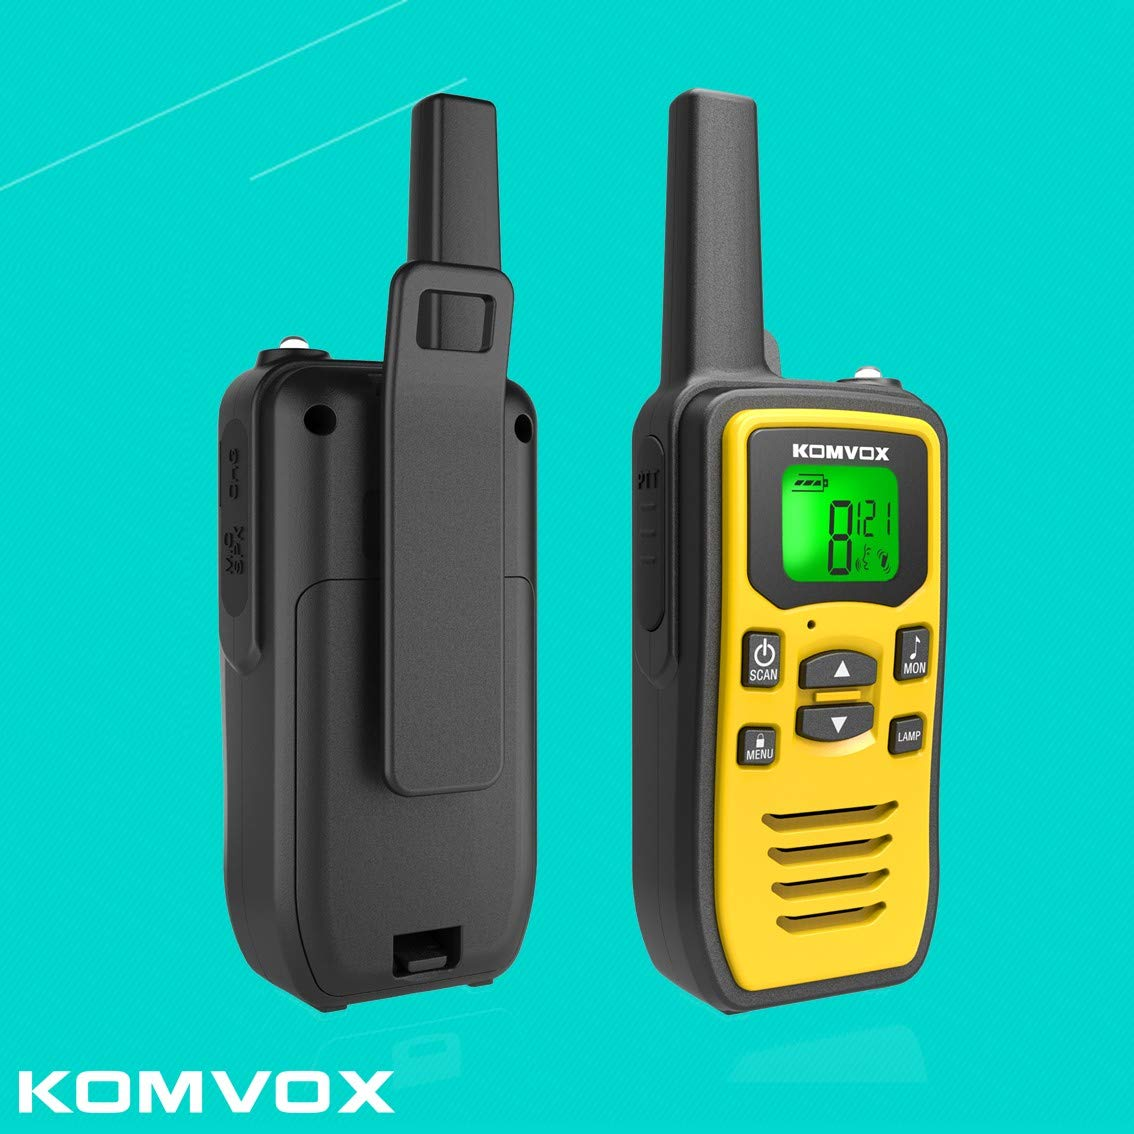 Professional Rechargeable Walkie Talkies Long Range for Adults Two Way Radio 22 Channels VOX Scan LCD Display with LED Flashlight Ideal for Field Survival Biking and Hiking Camping Travel Excursion